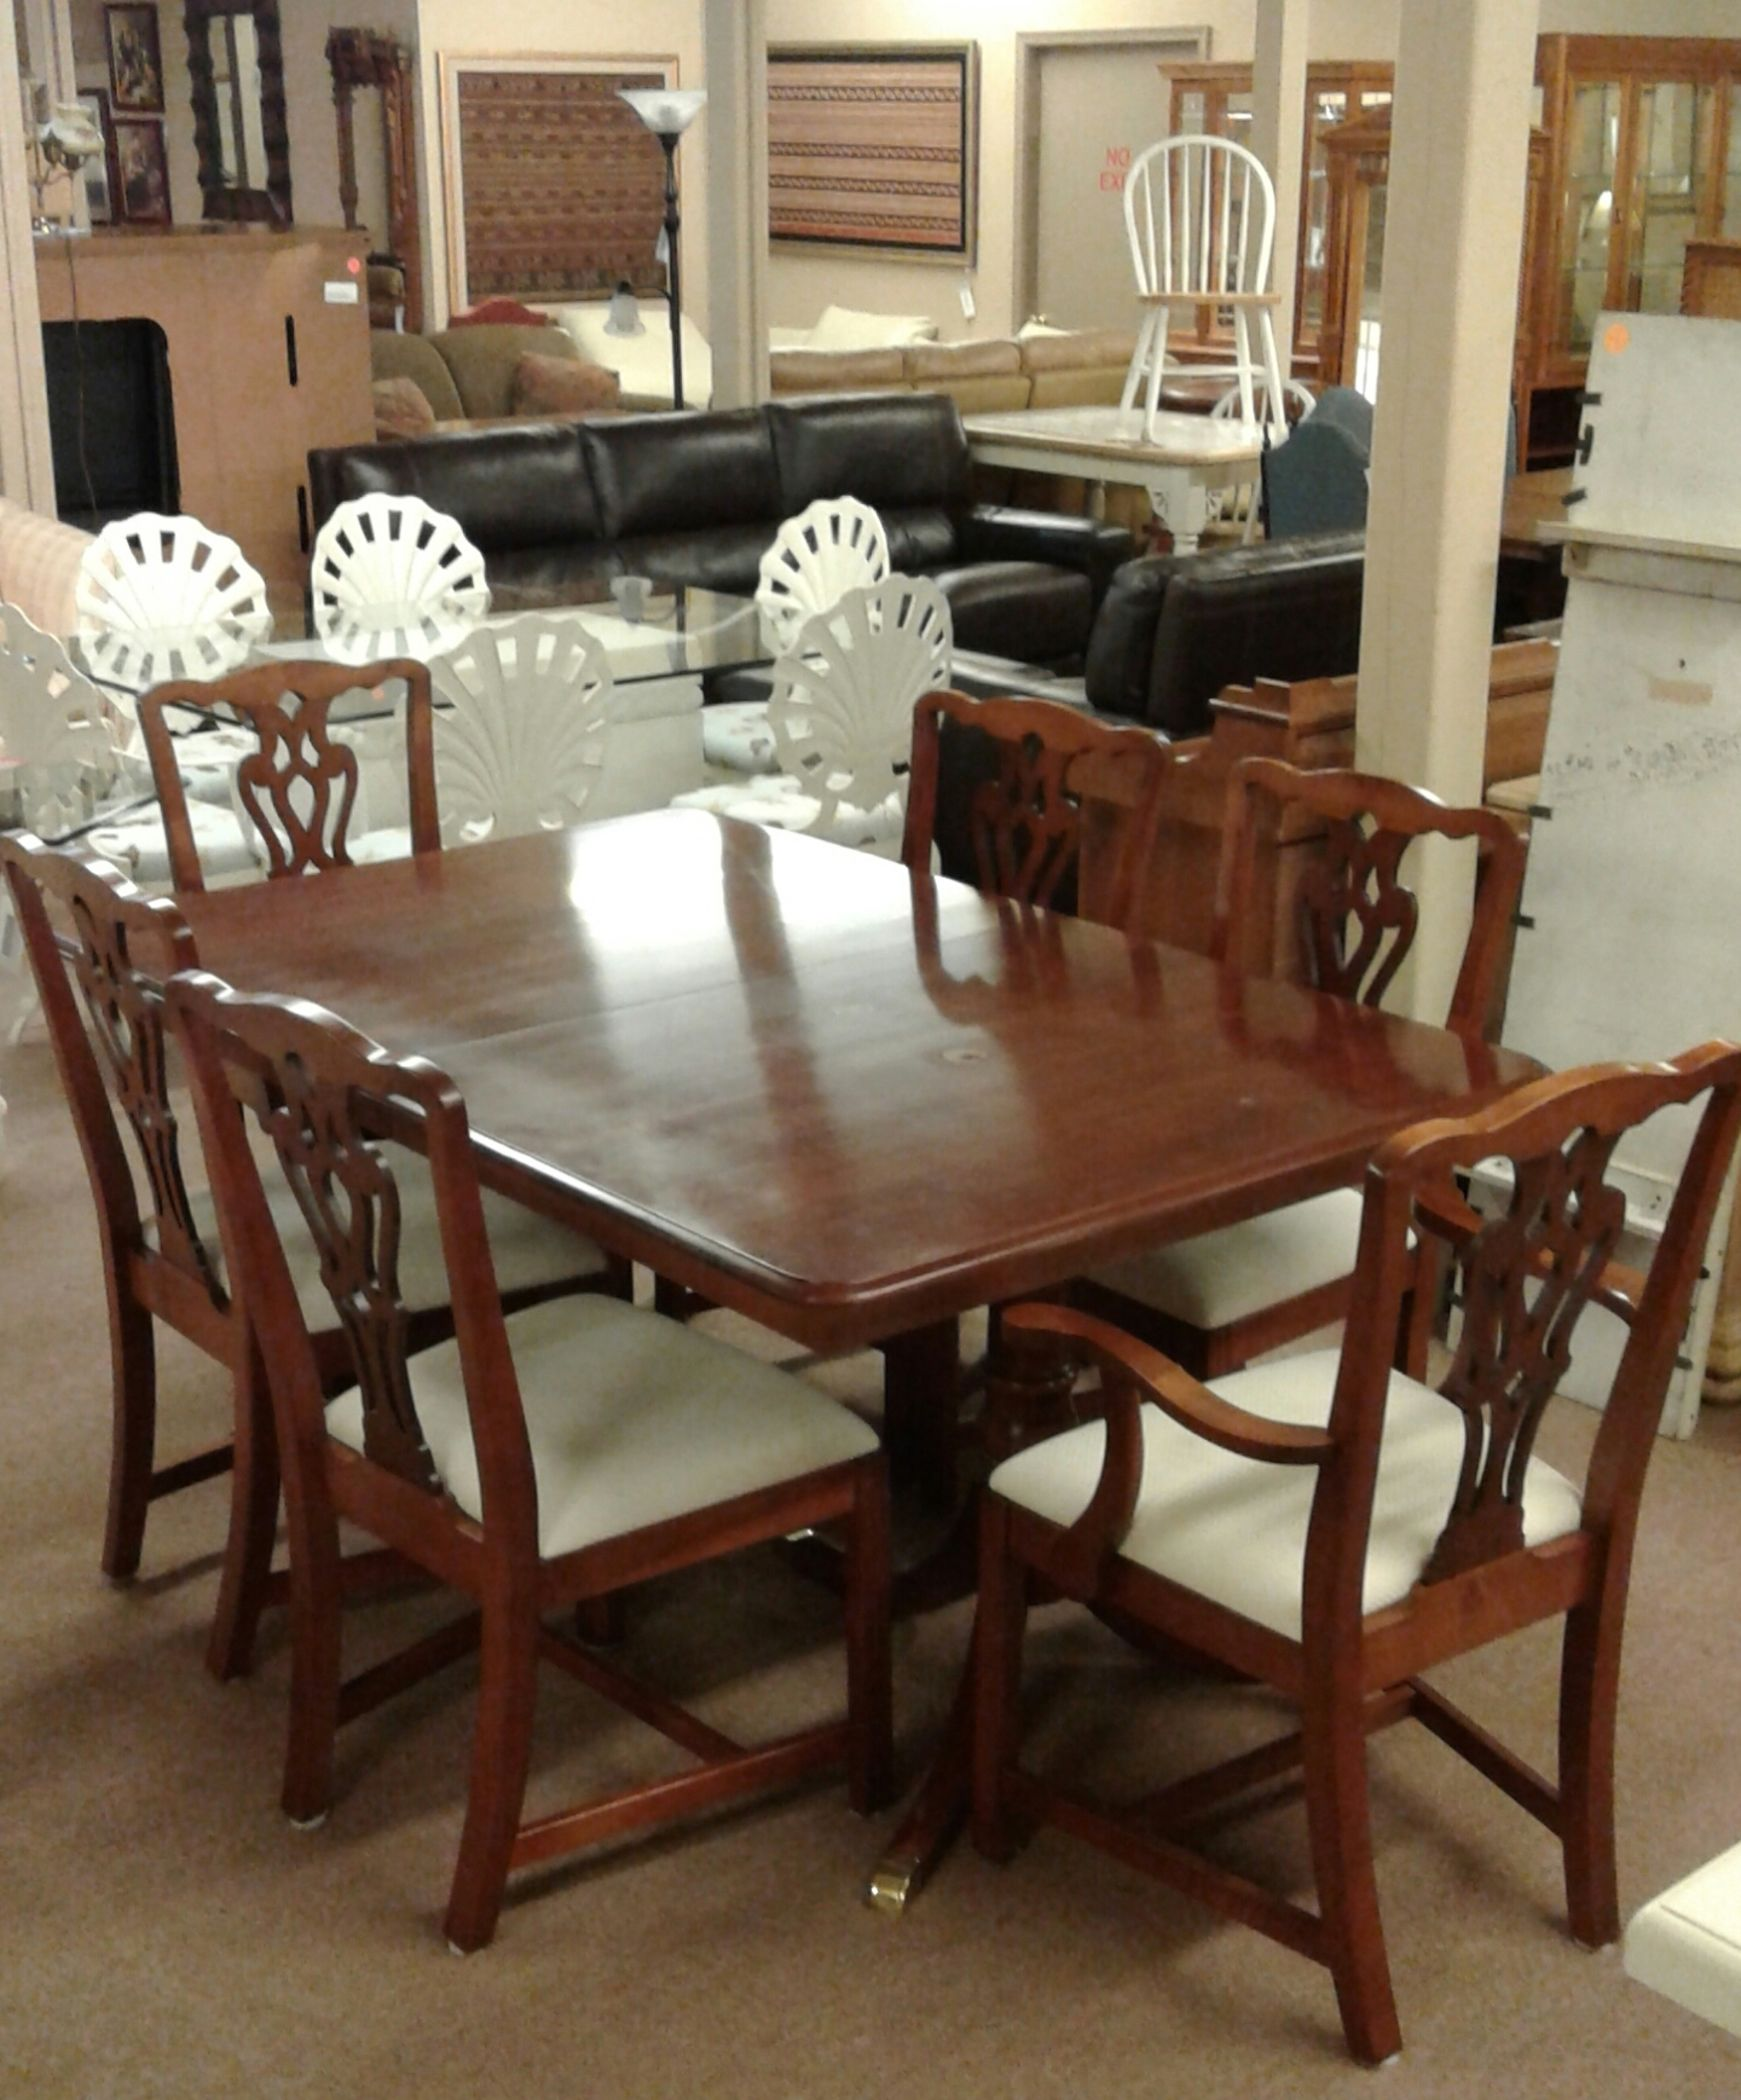 28 Pennsylvania House Dining Room Chairs Cherry Dining Table By Pennsylvania House And 8